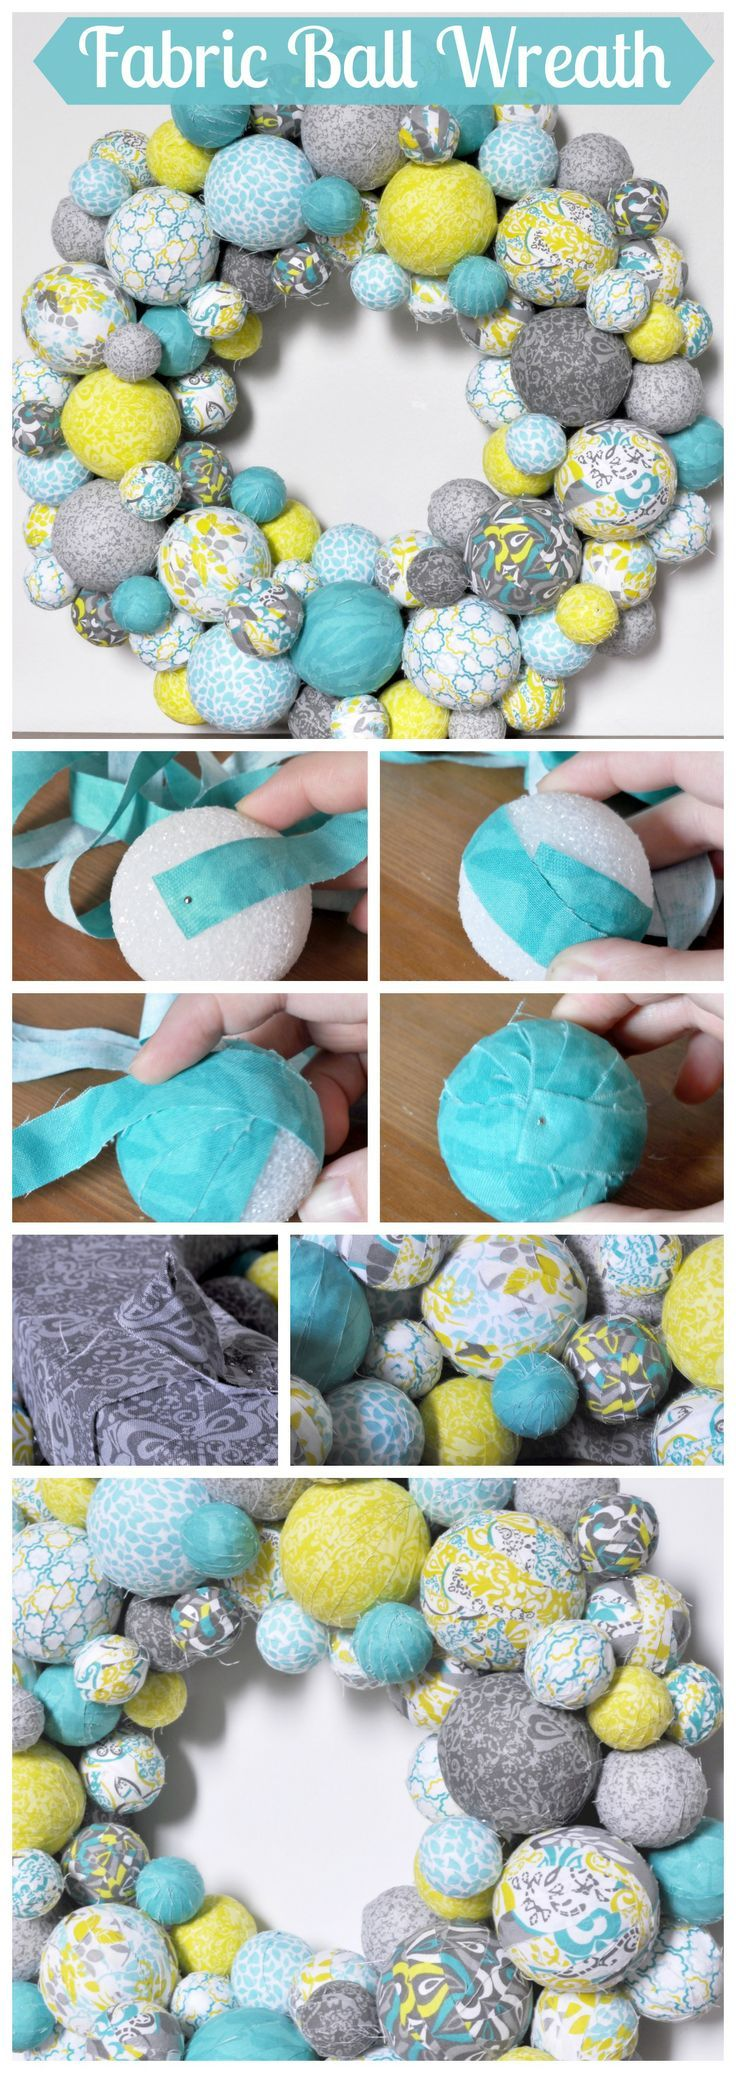 Fabric Ball Wreath - I am so excited about my spring wreath in aqua, lemongrass green, and gray patterns! It looks fabulous in our house and would be so adorable in a nursery. {The Love Nerds} #springwreath #crafts #tutorial